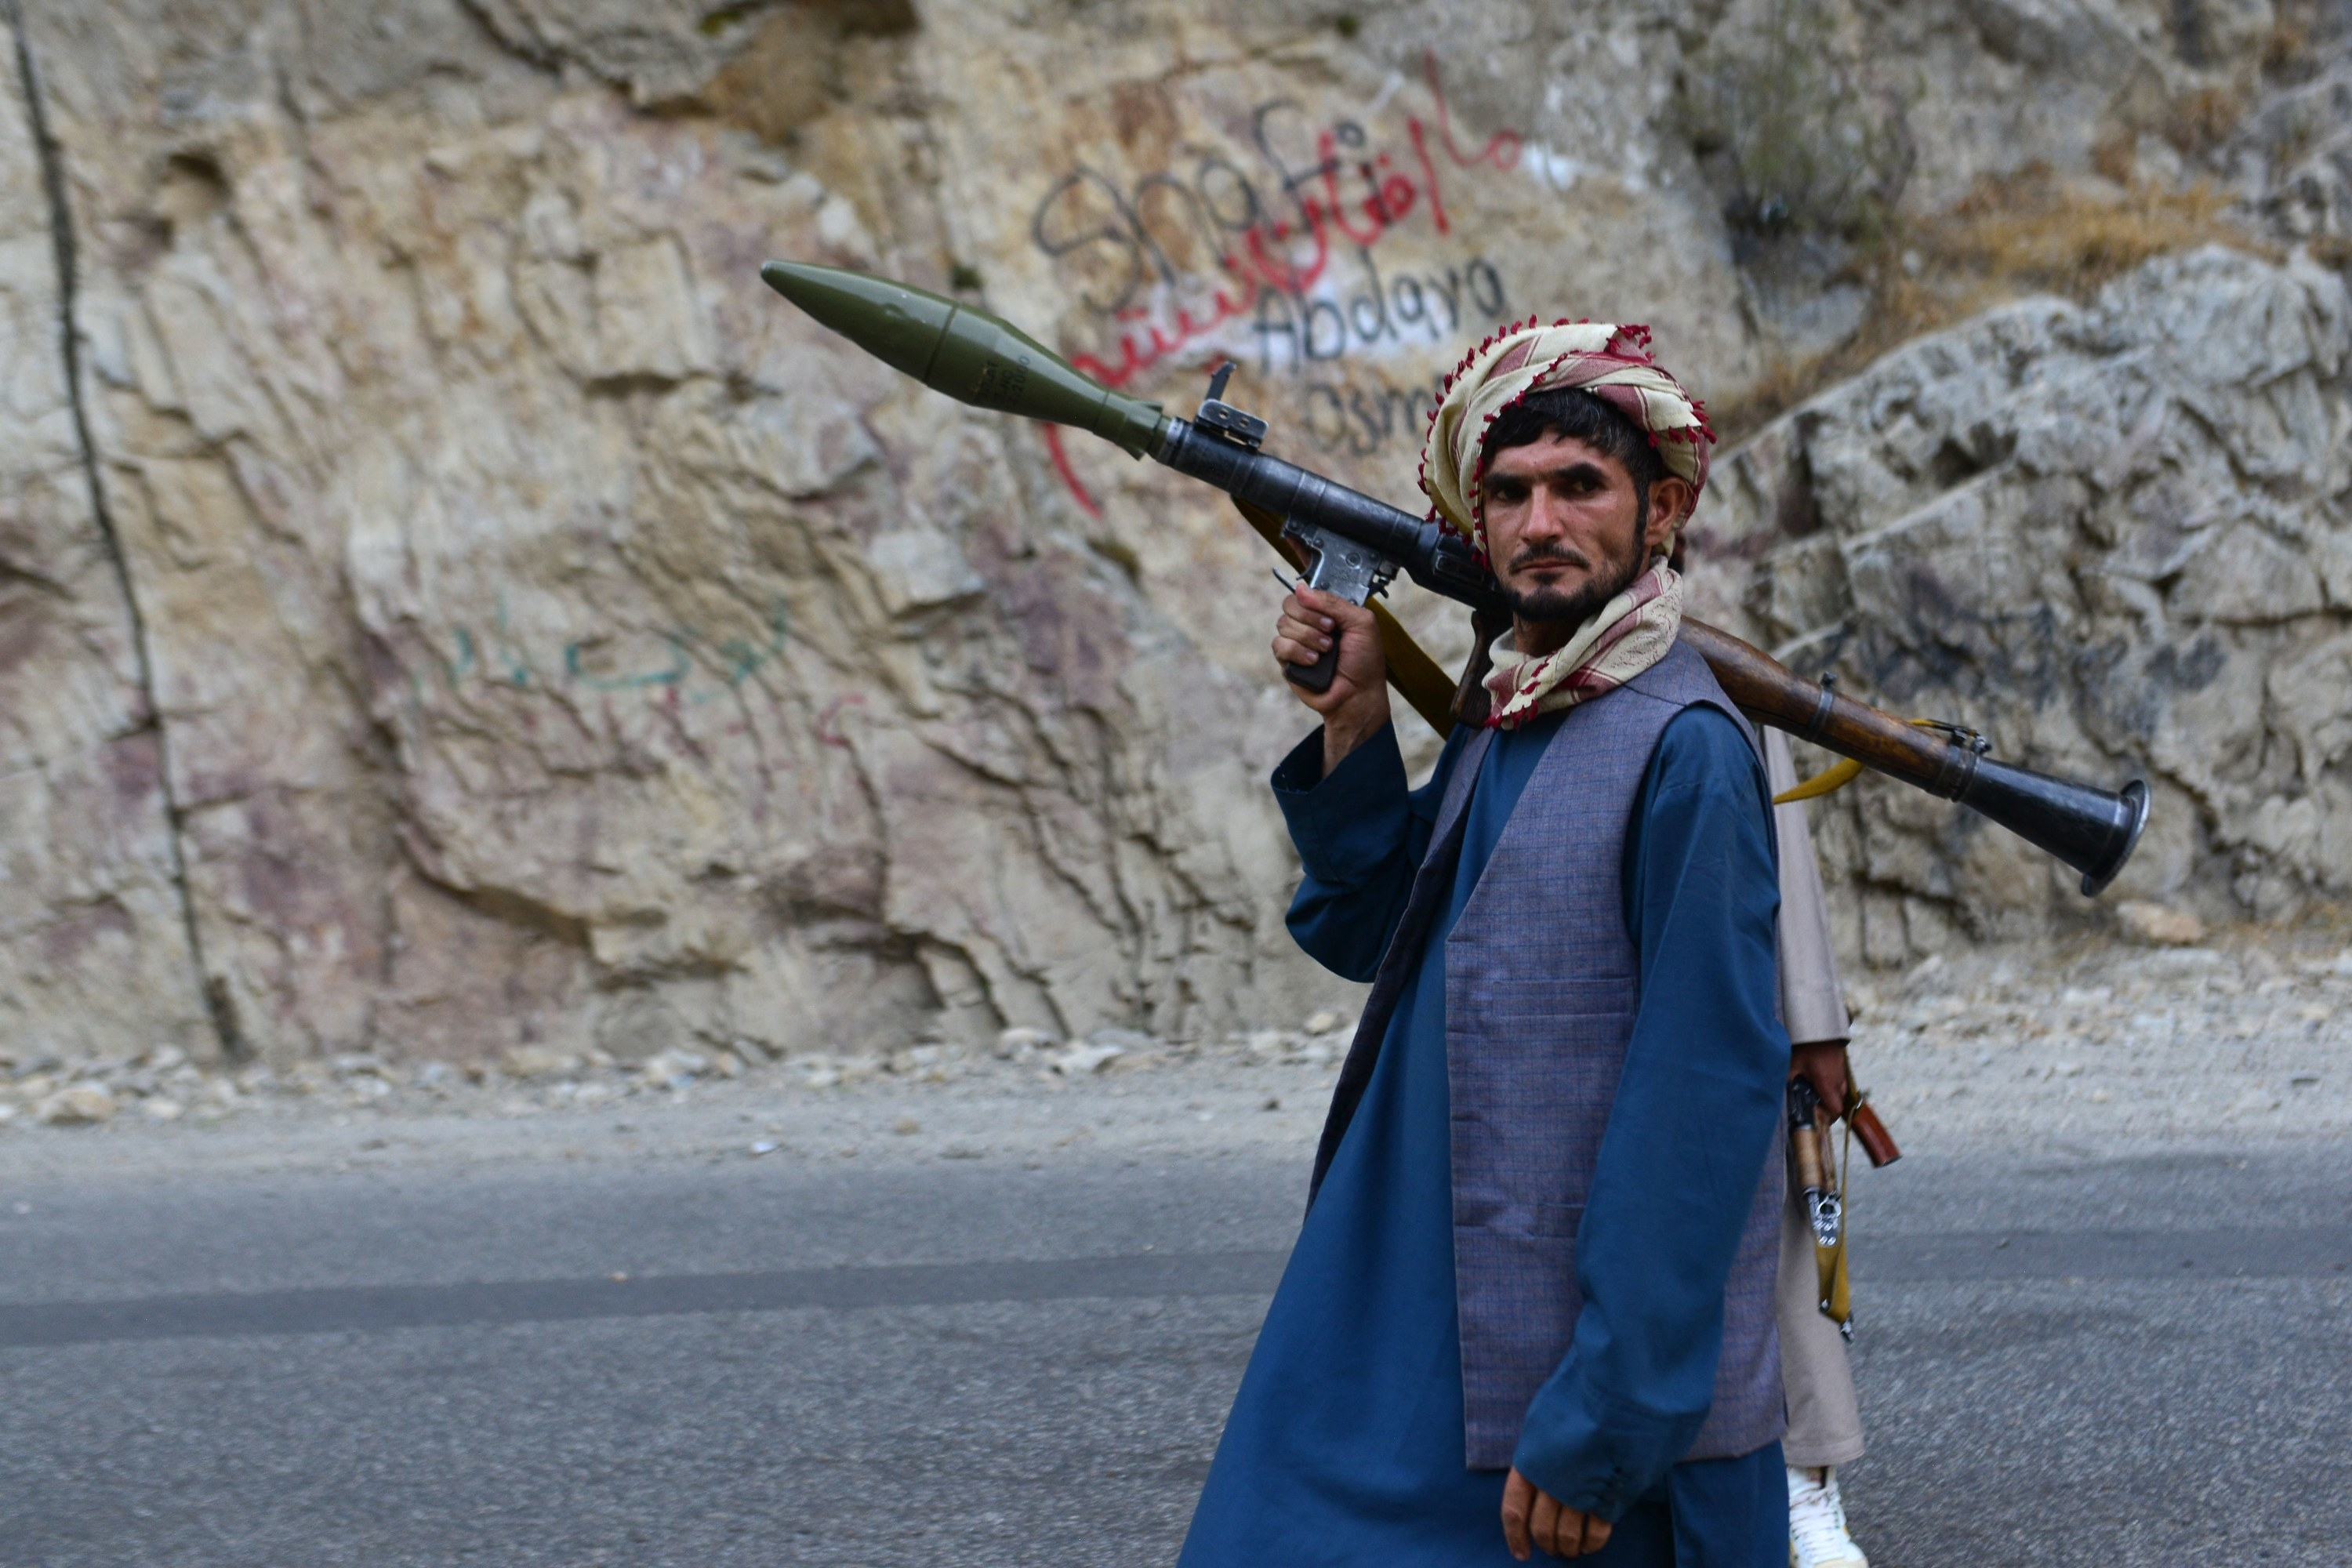 An Afghan soldier holds a gun as he patrols a remote road